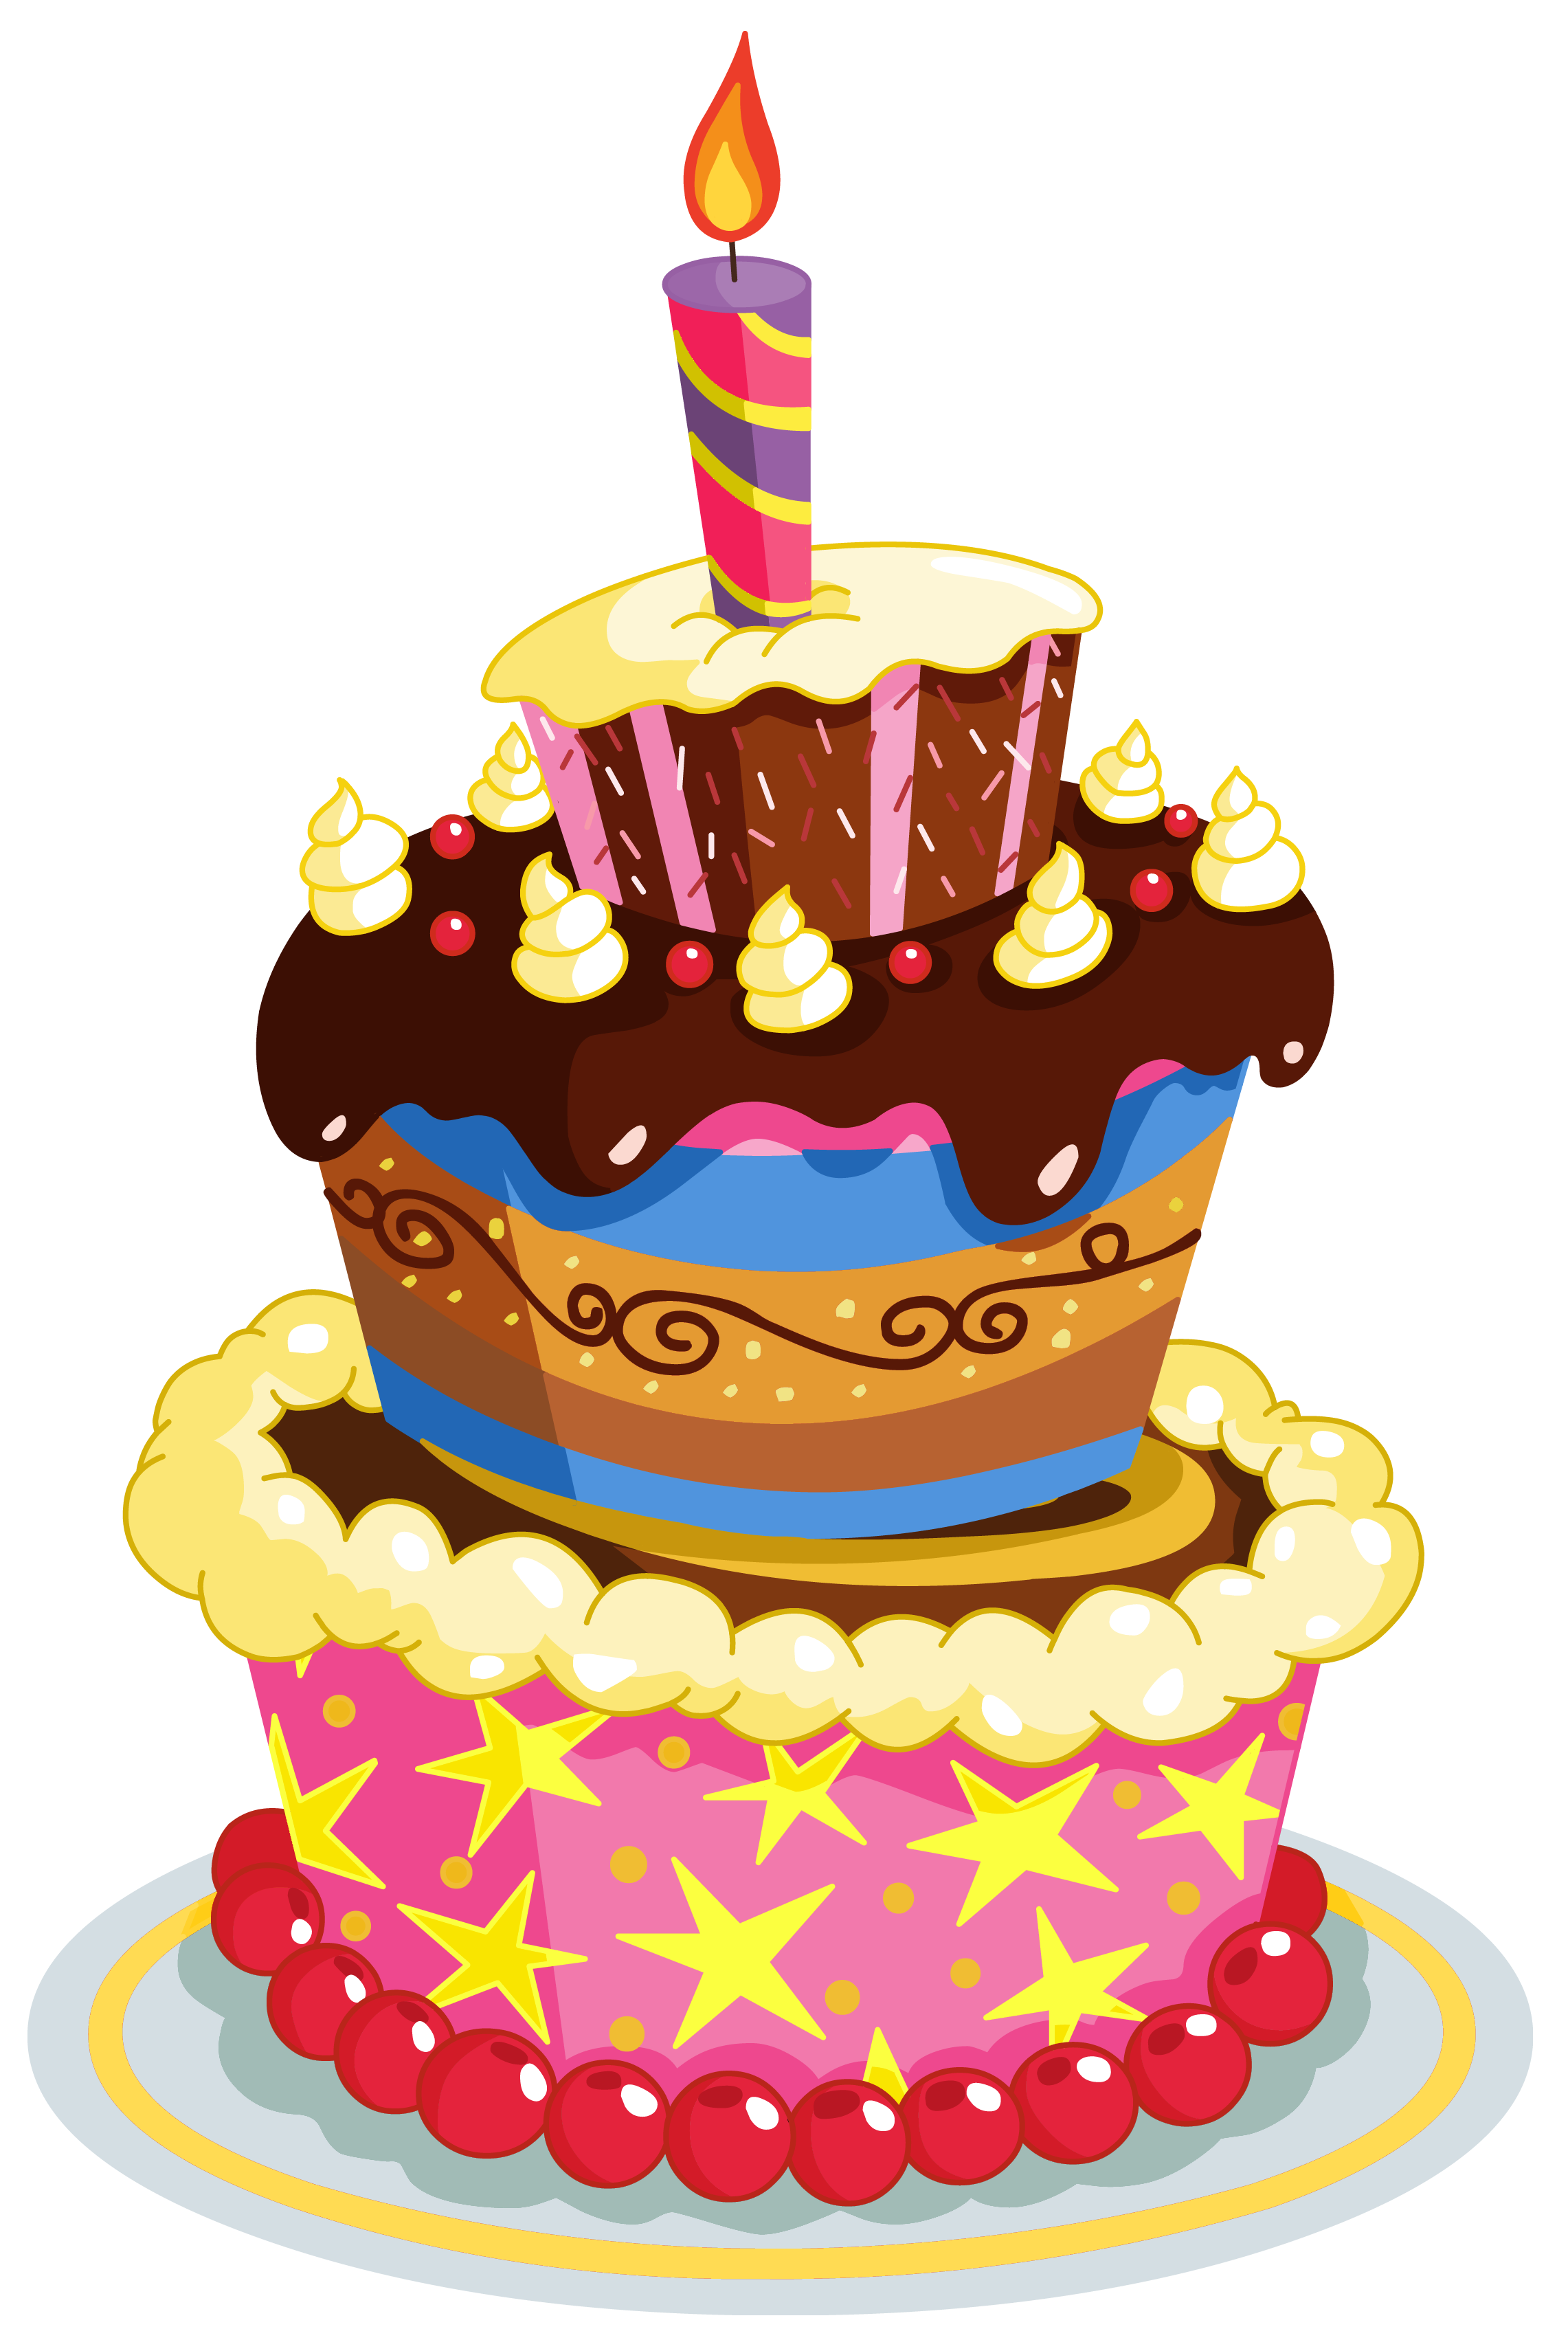 Colorful birthday cake png. Handcuffs clipart cartoon